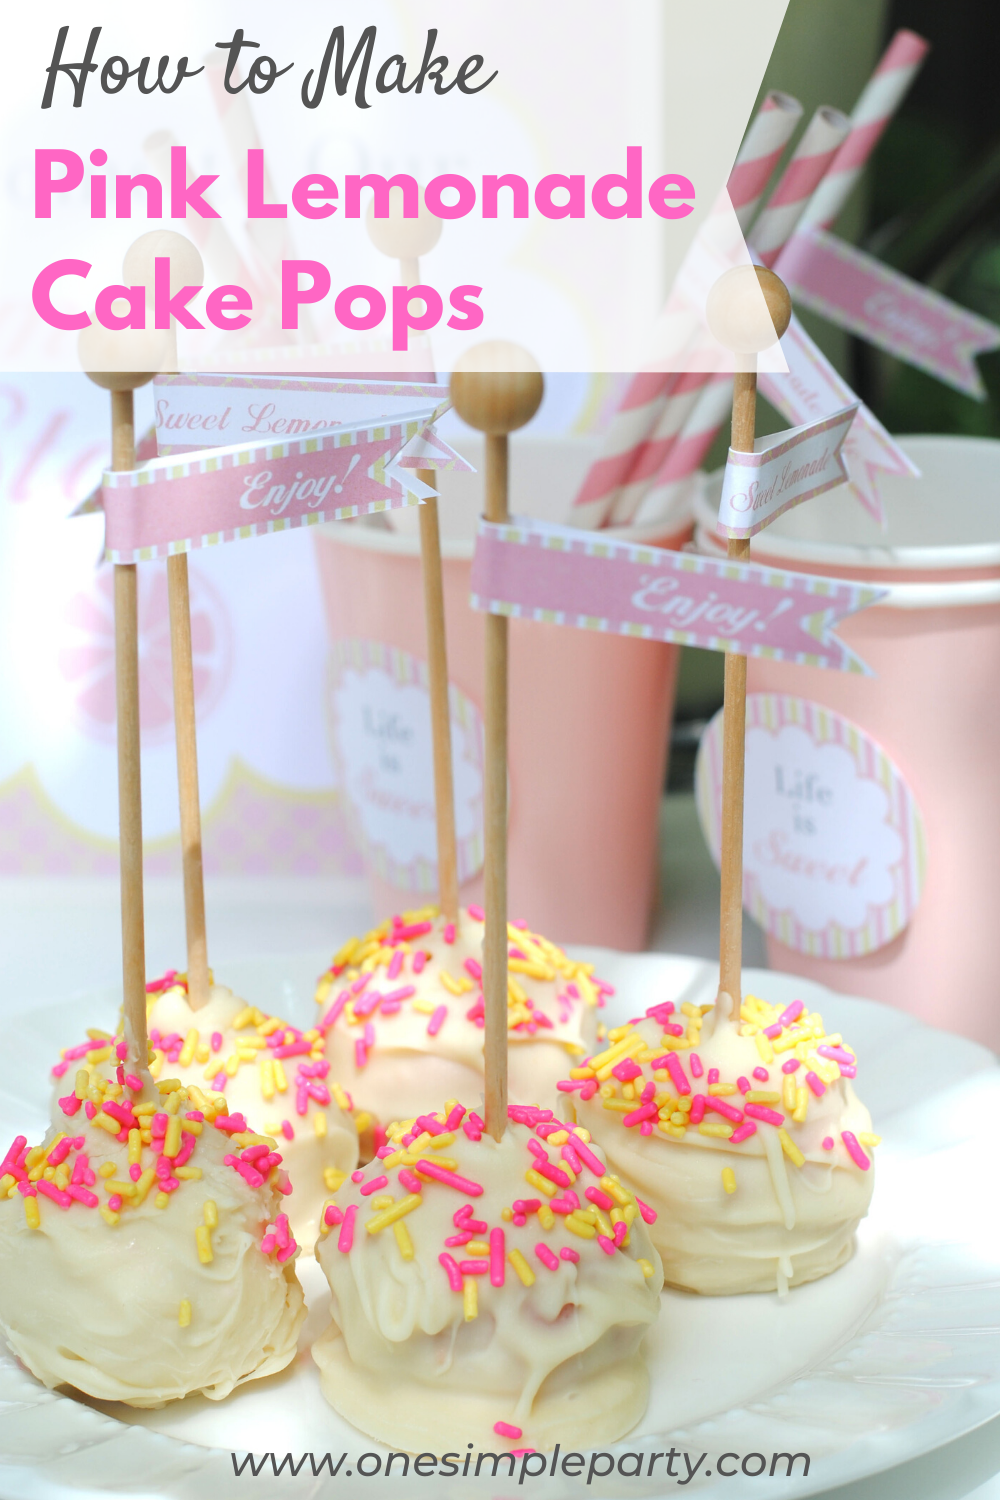 Pink Lemonade Cake Pops - ONE SIMPLE PARTY